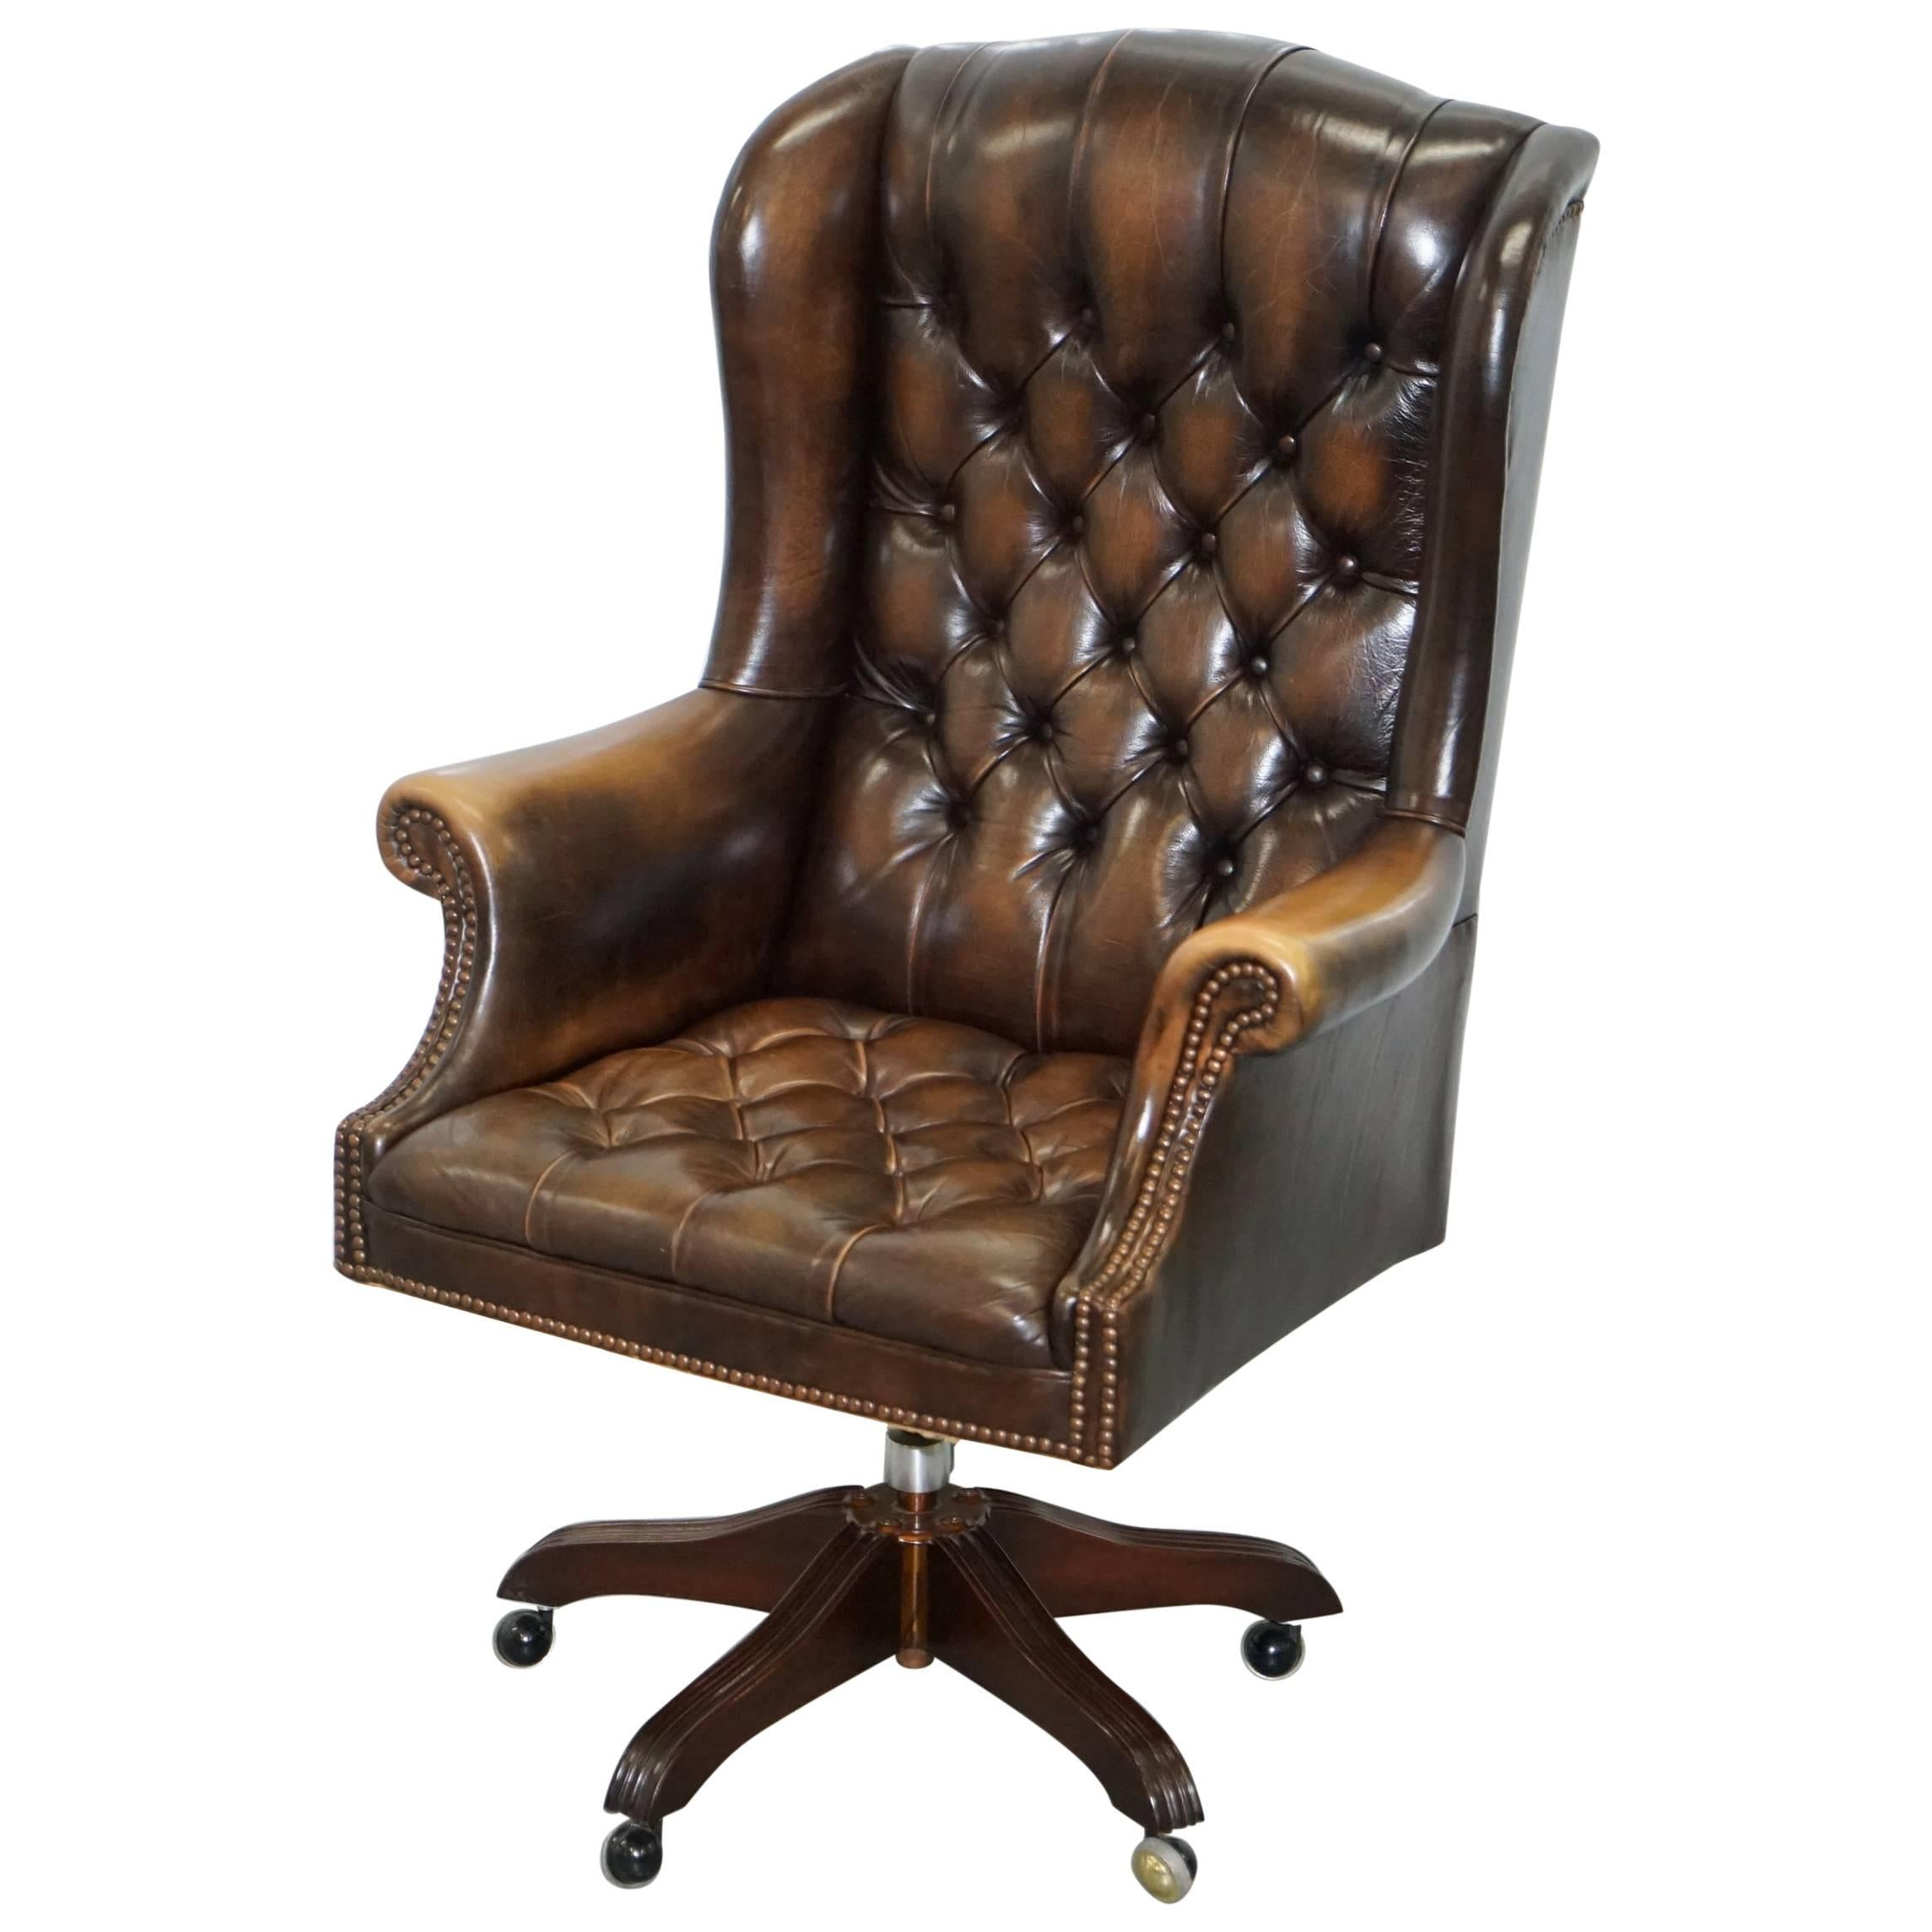 desk chair brown leather massager vintage wade chesterfield captains wingback office hand dyed for sale